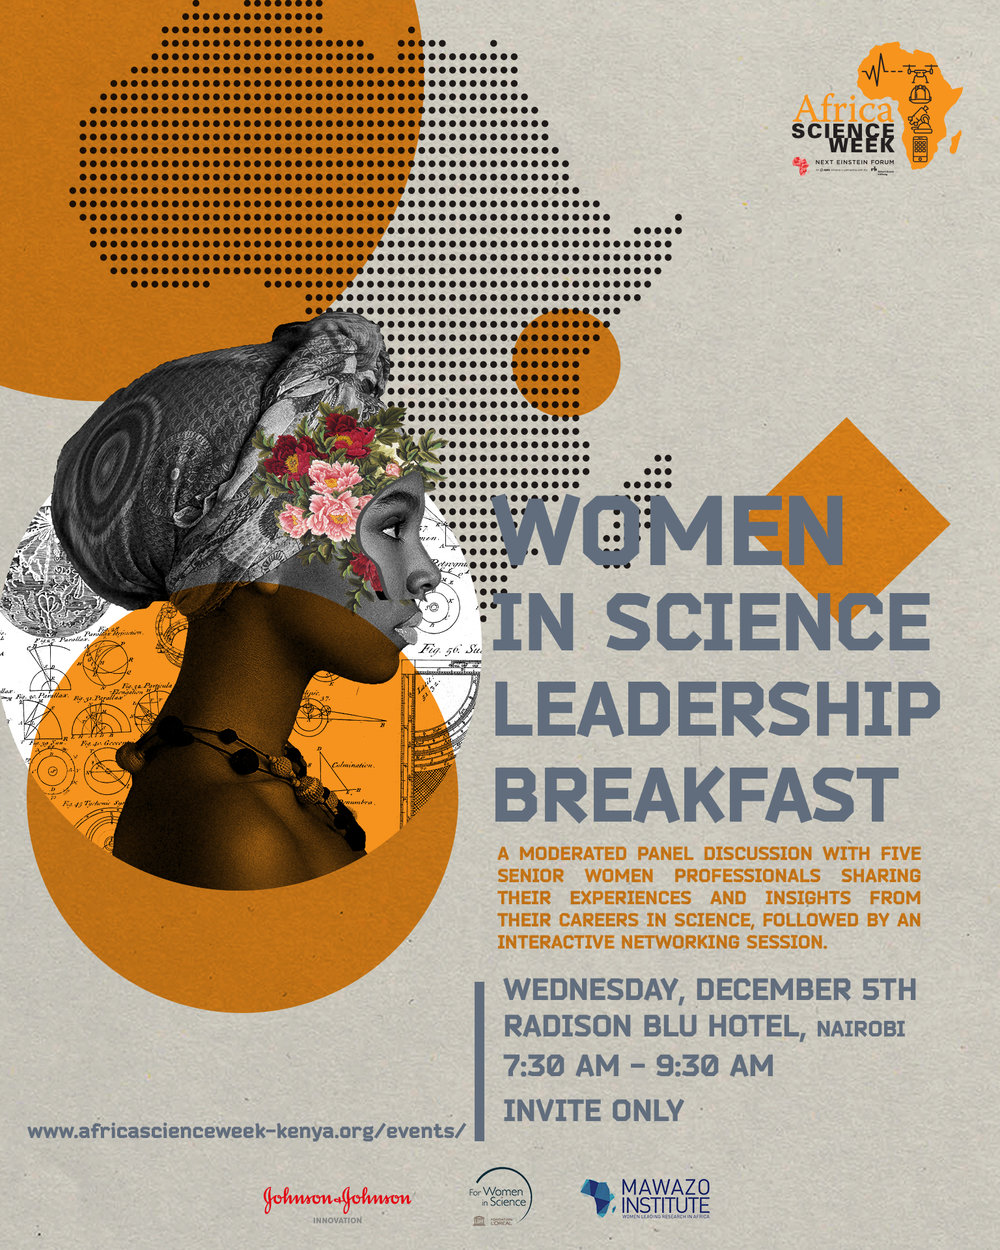 Women in science breakfast.jpg